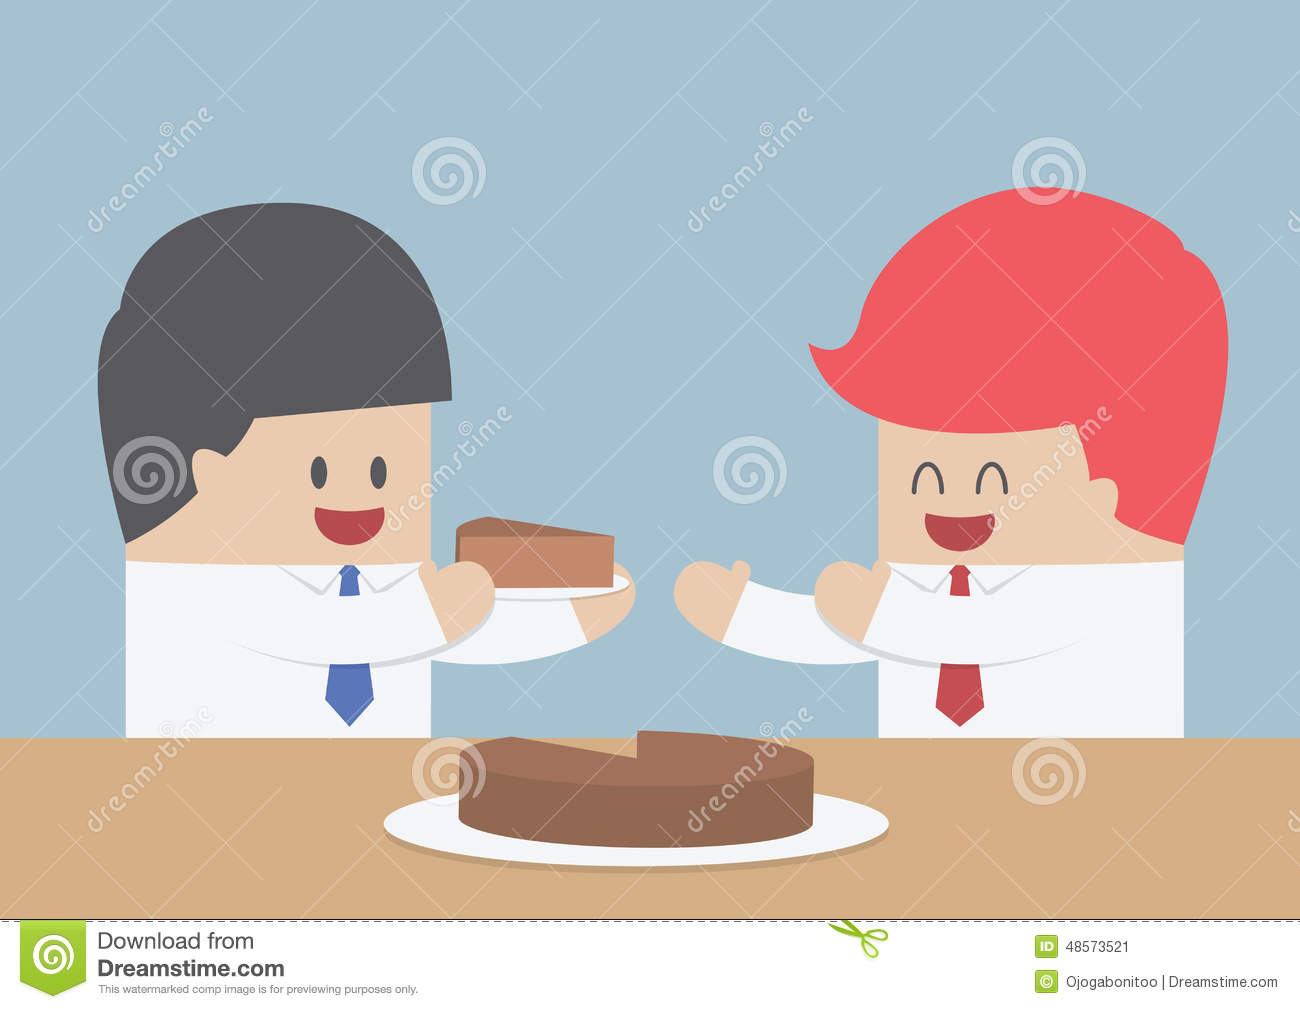 Businessman Give A Piece Of Cake To Another Market Share